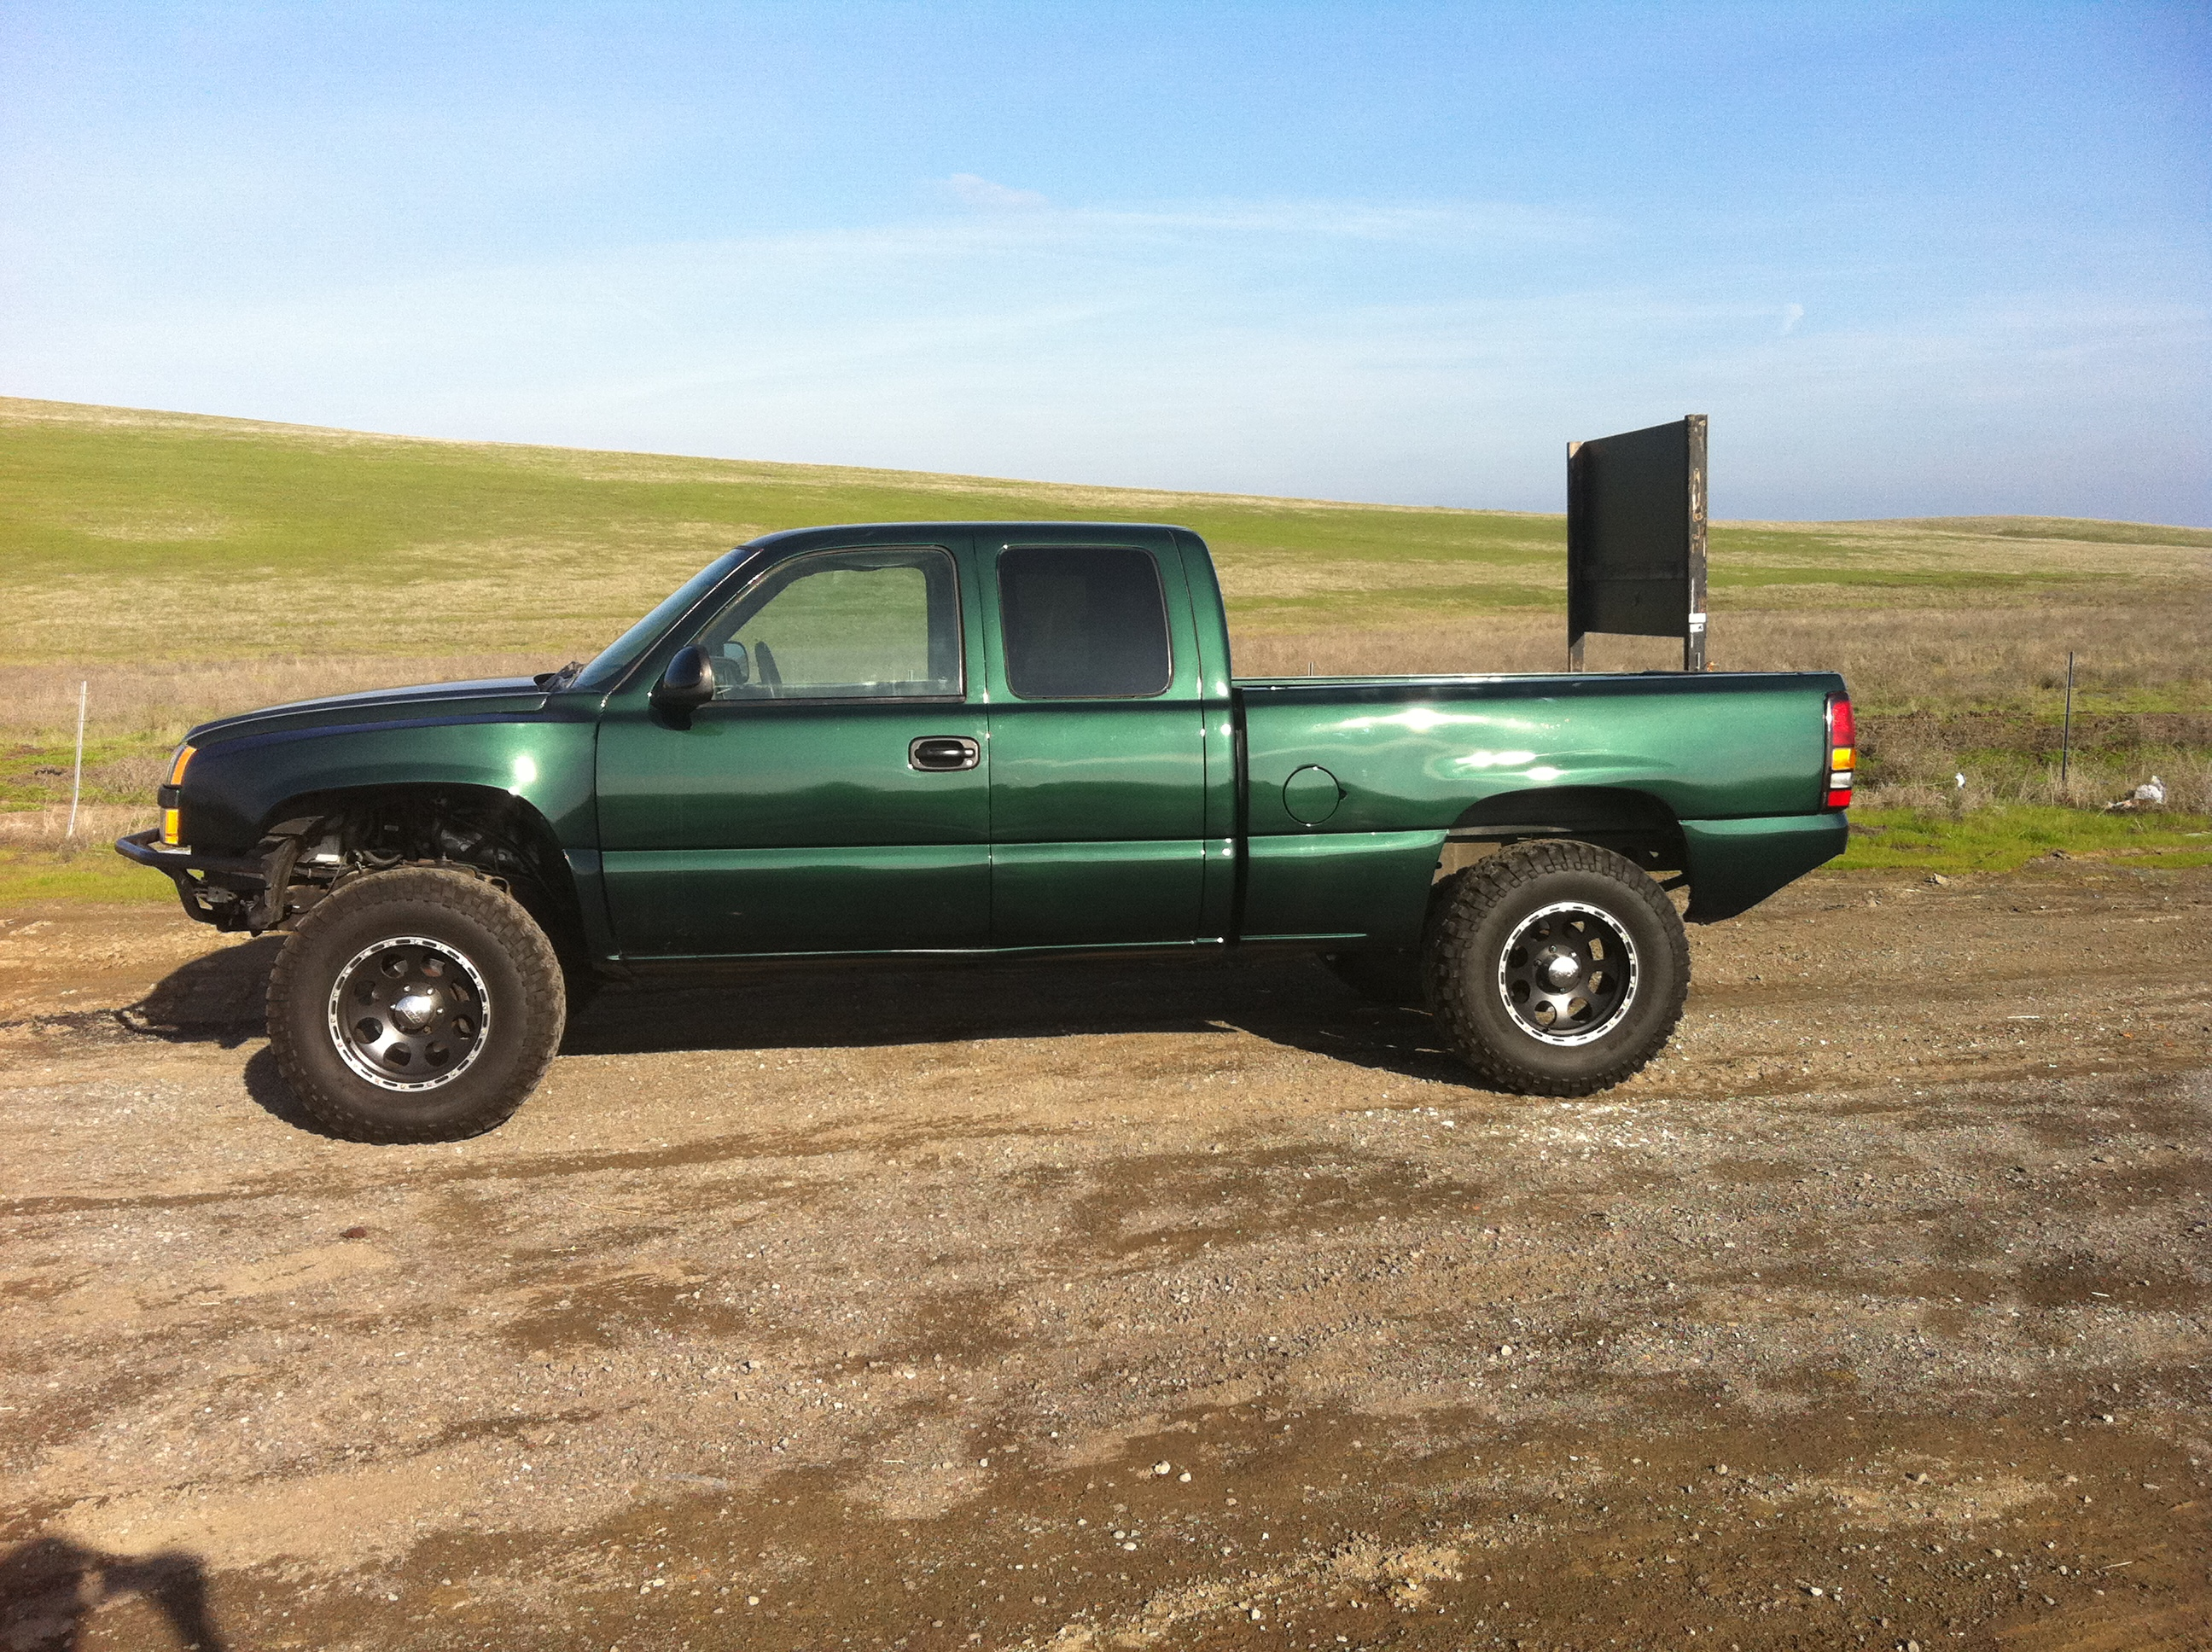 GreenChevy/photo123.jpg